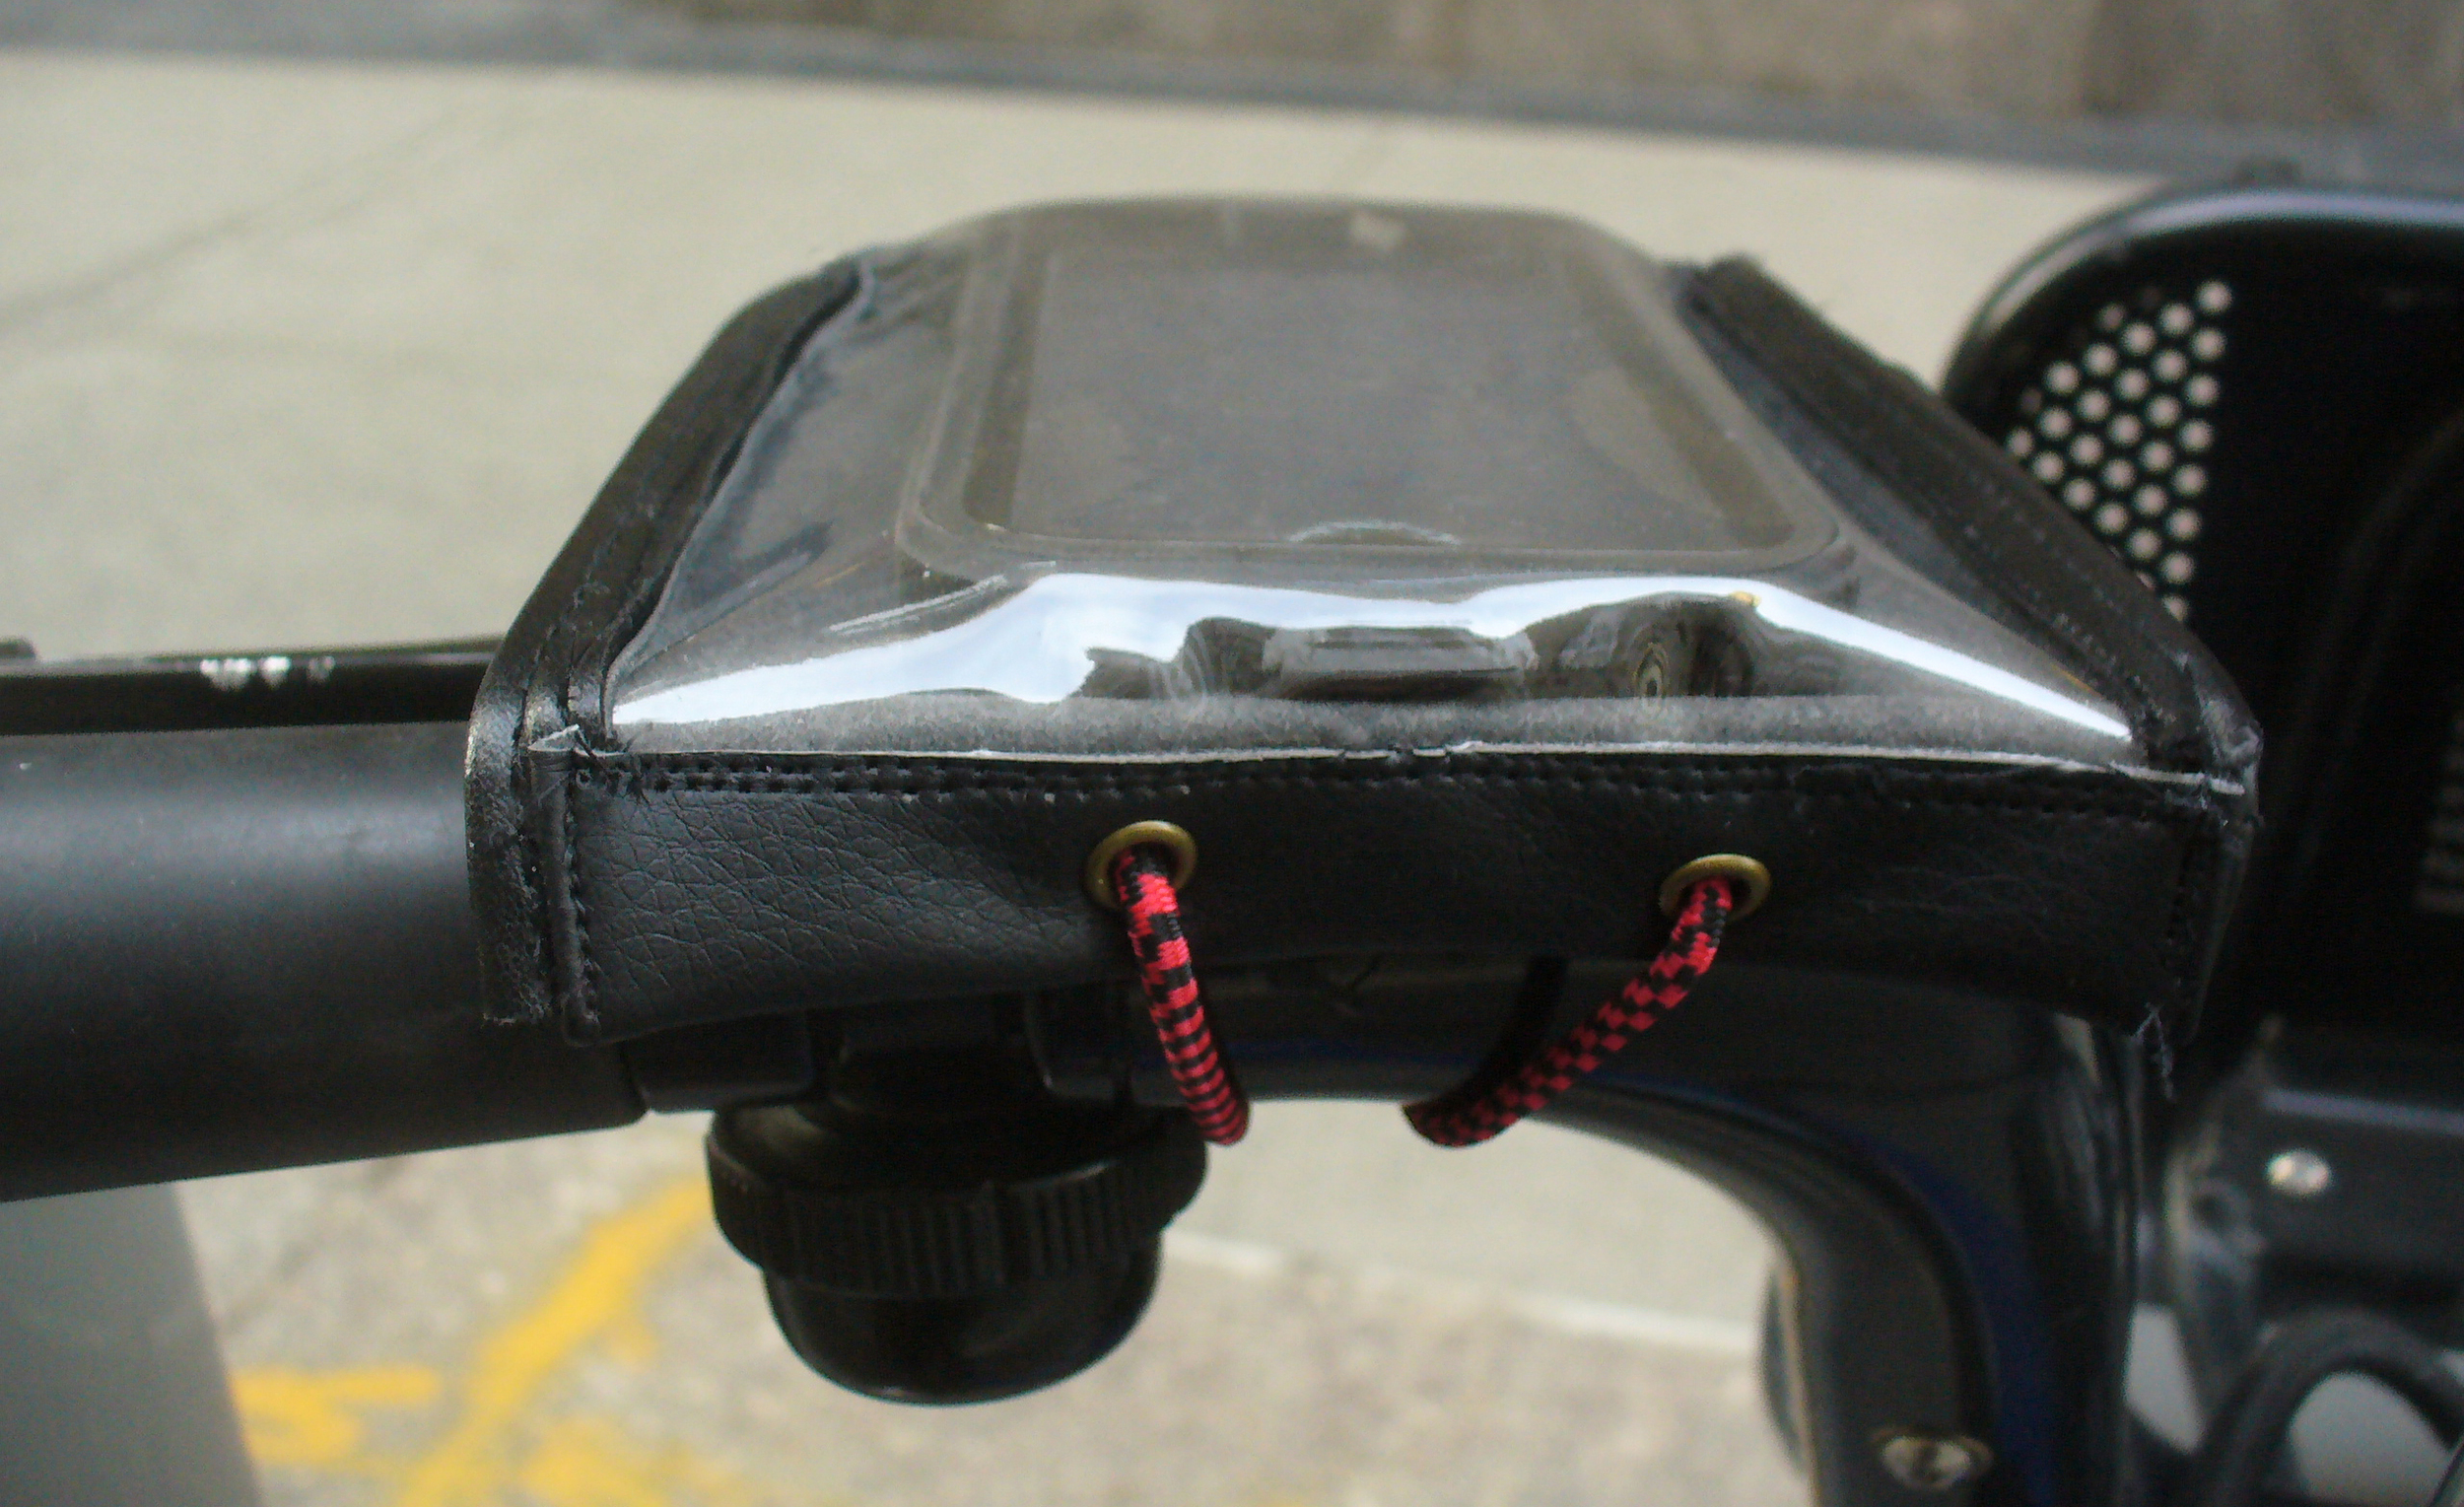 The holder keeps your phone snug and secure and quickly wraps around the handlebar of a Citibike (or any bike) with a bungee cord and clasp.